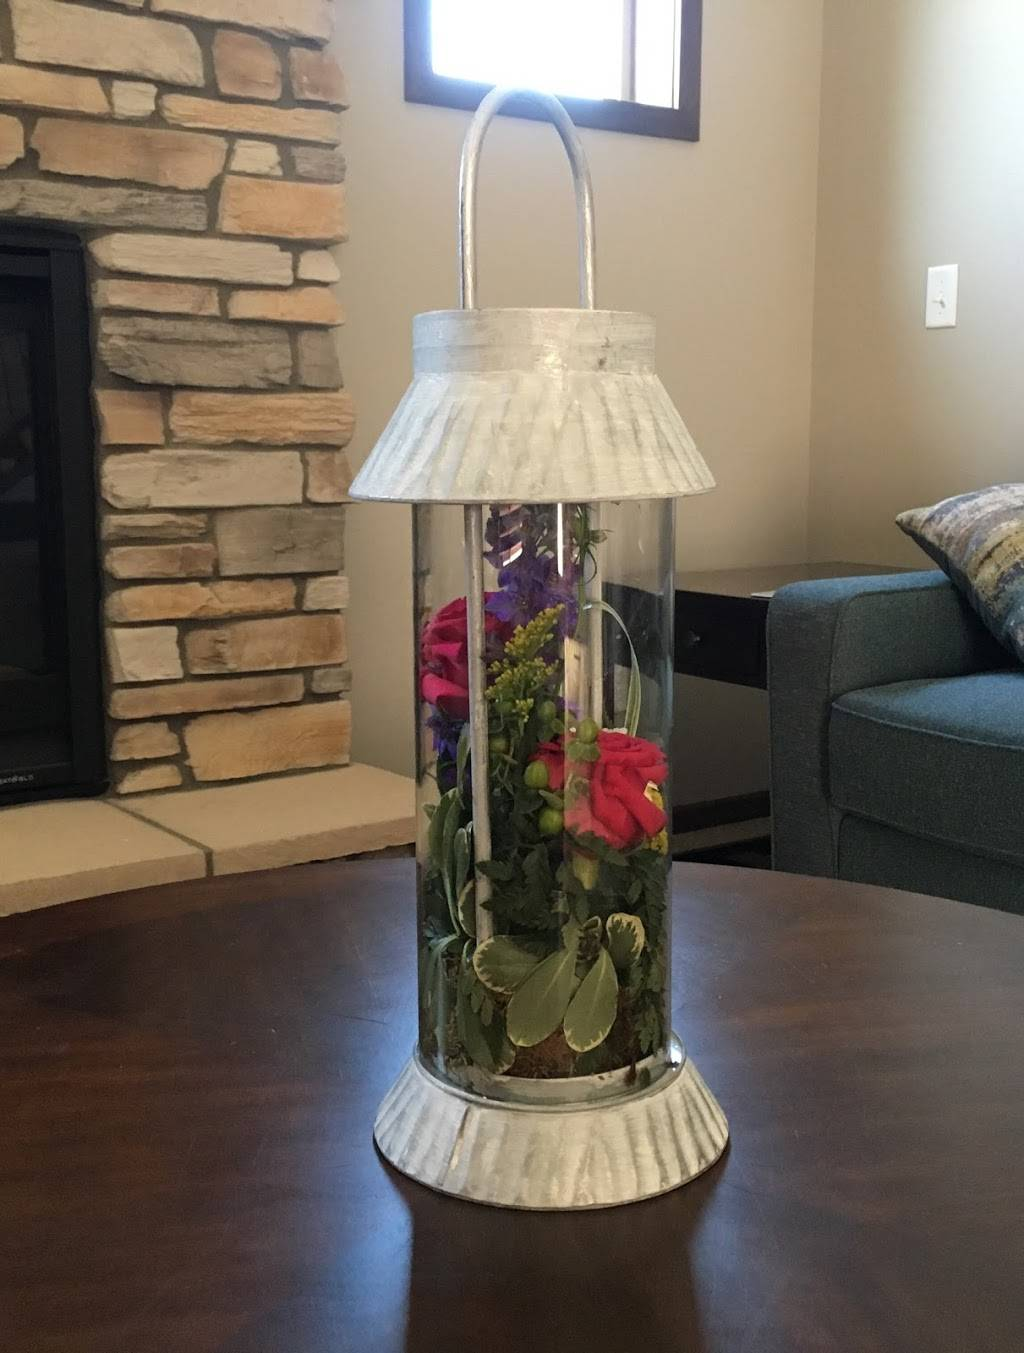 Hummingbird Floral & Gifts - florist  | Photo 4 of 9 | Address: 4001 Rice St, Shoreview, MN 55126, USA | Phone: (651) 486-0403